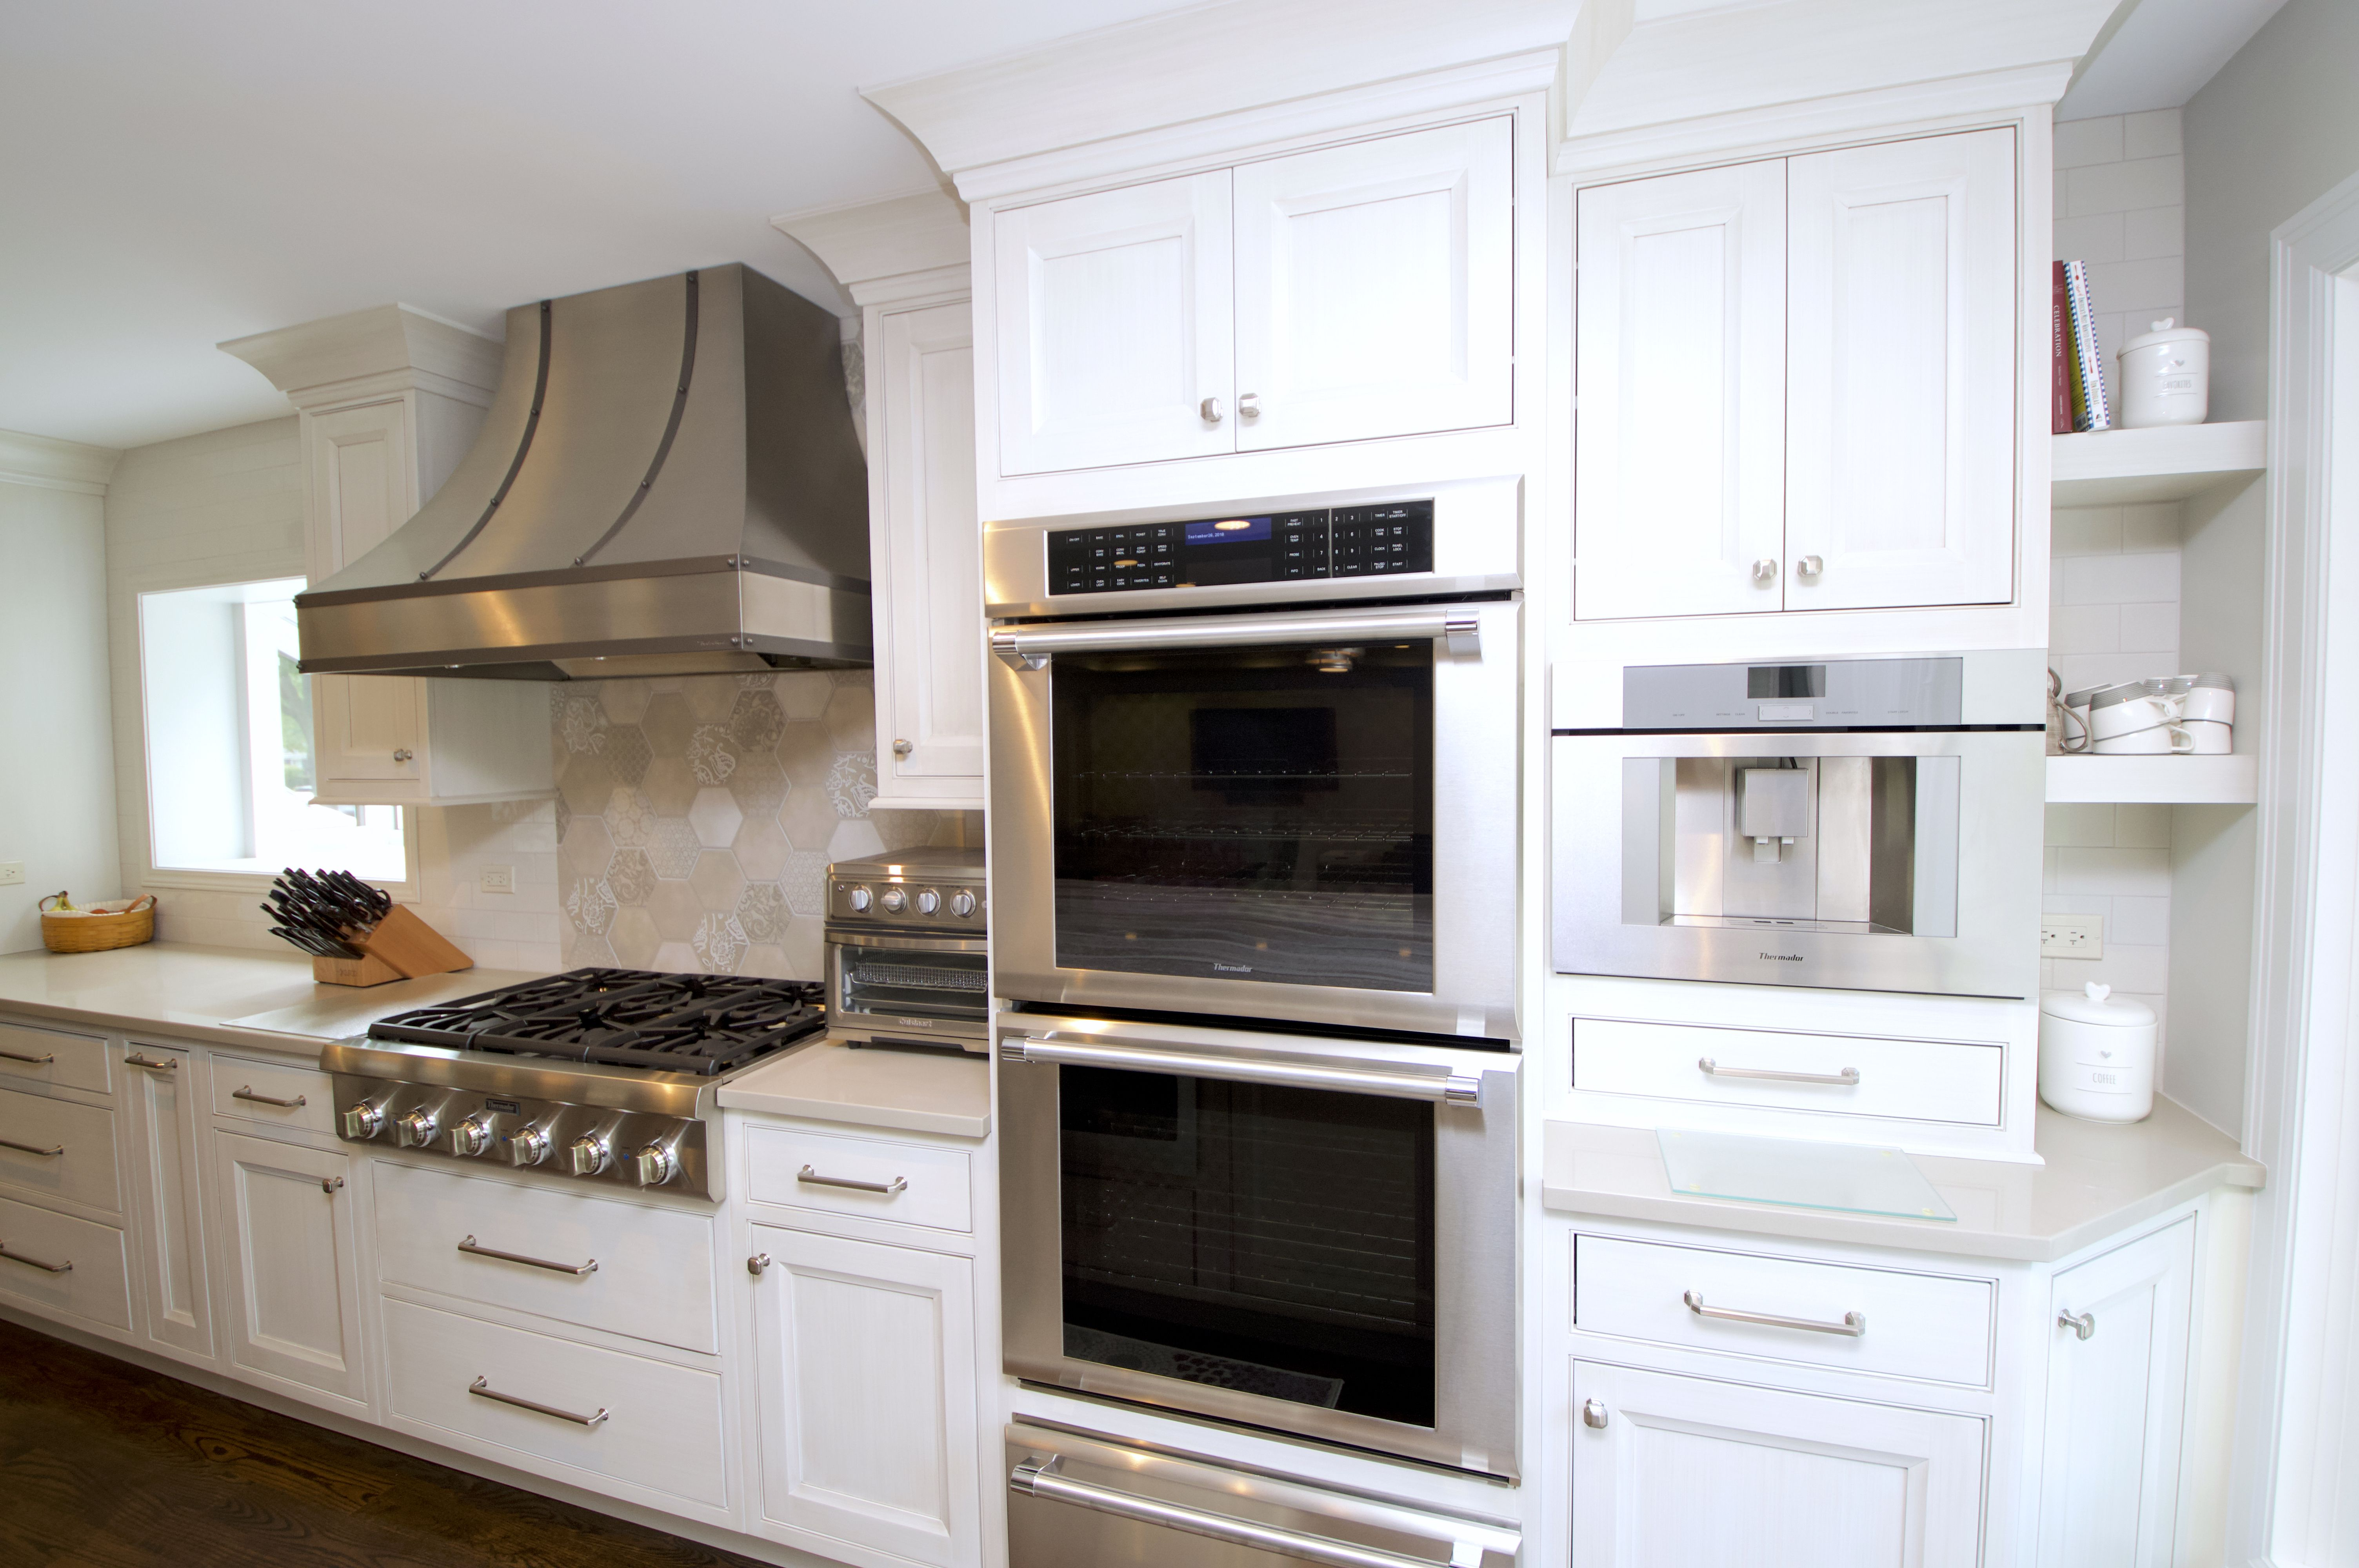 Dreaming of Double Ovens And White Kitchen Cabinets ...